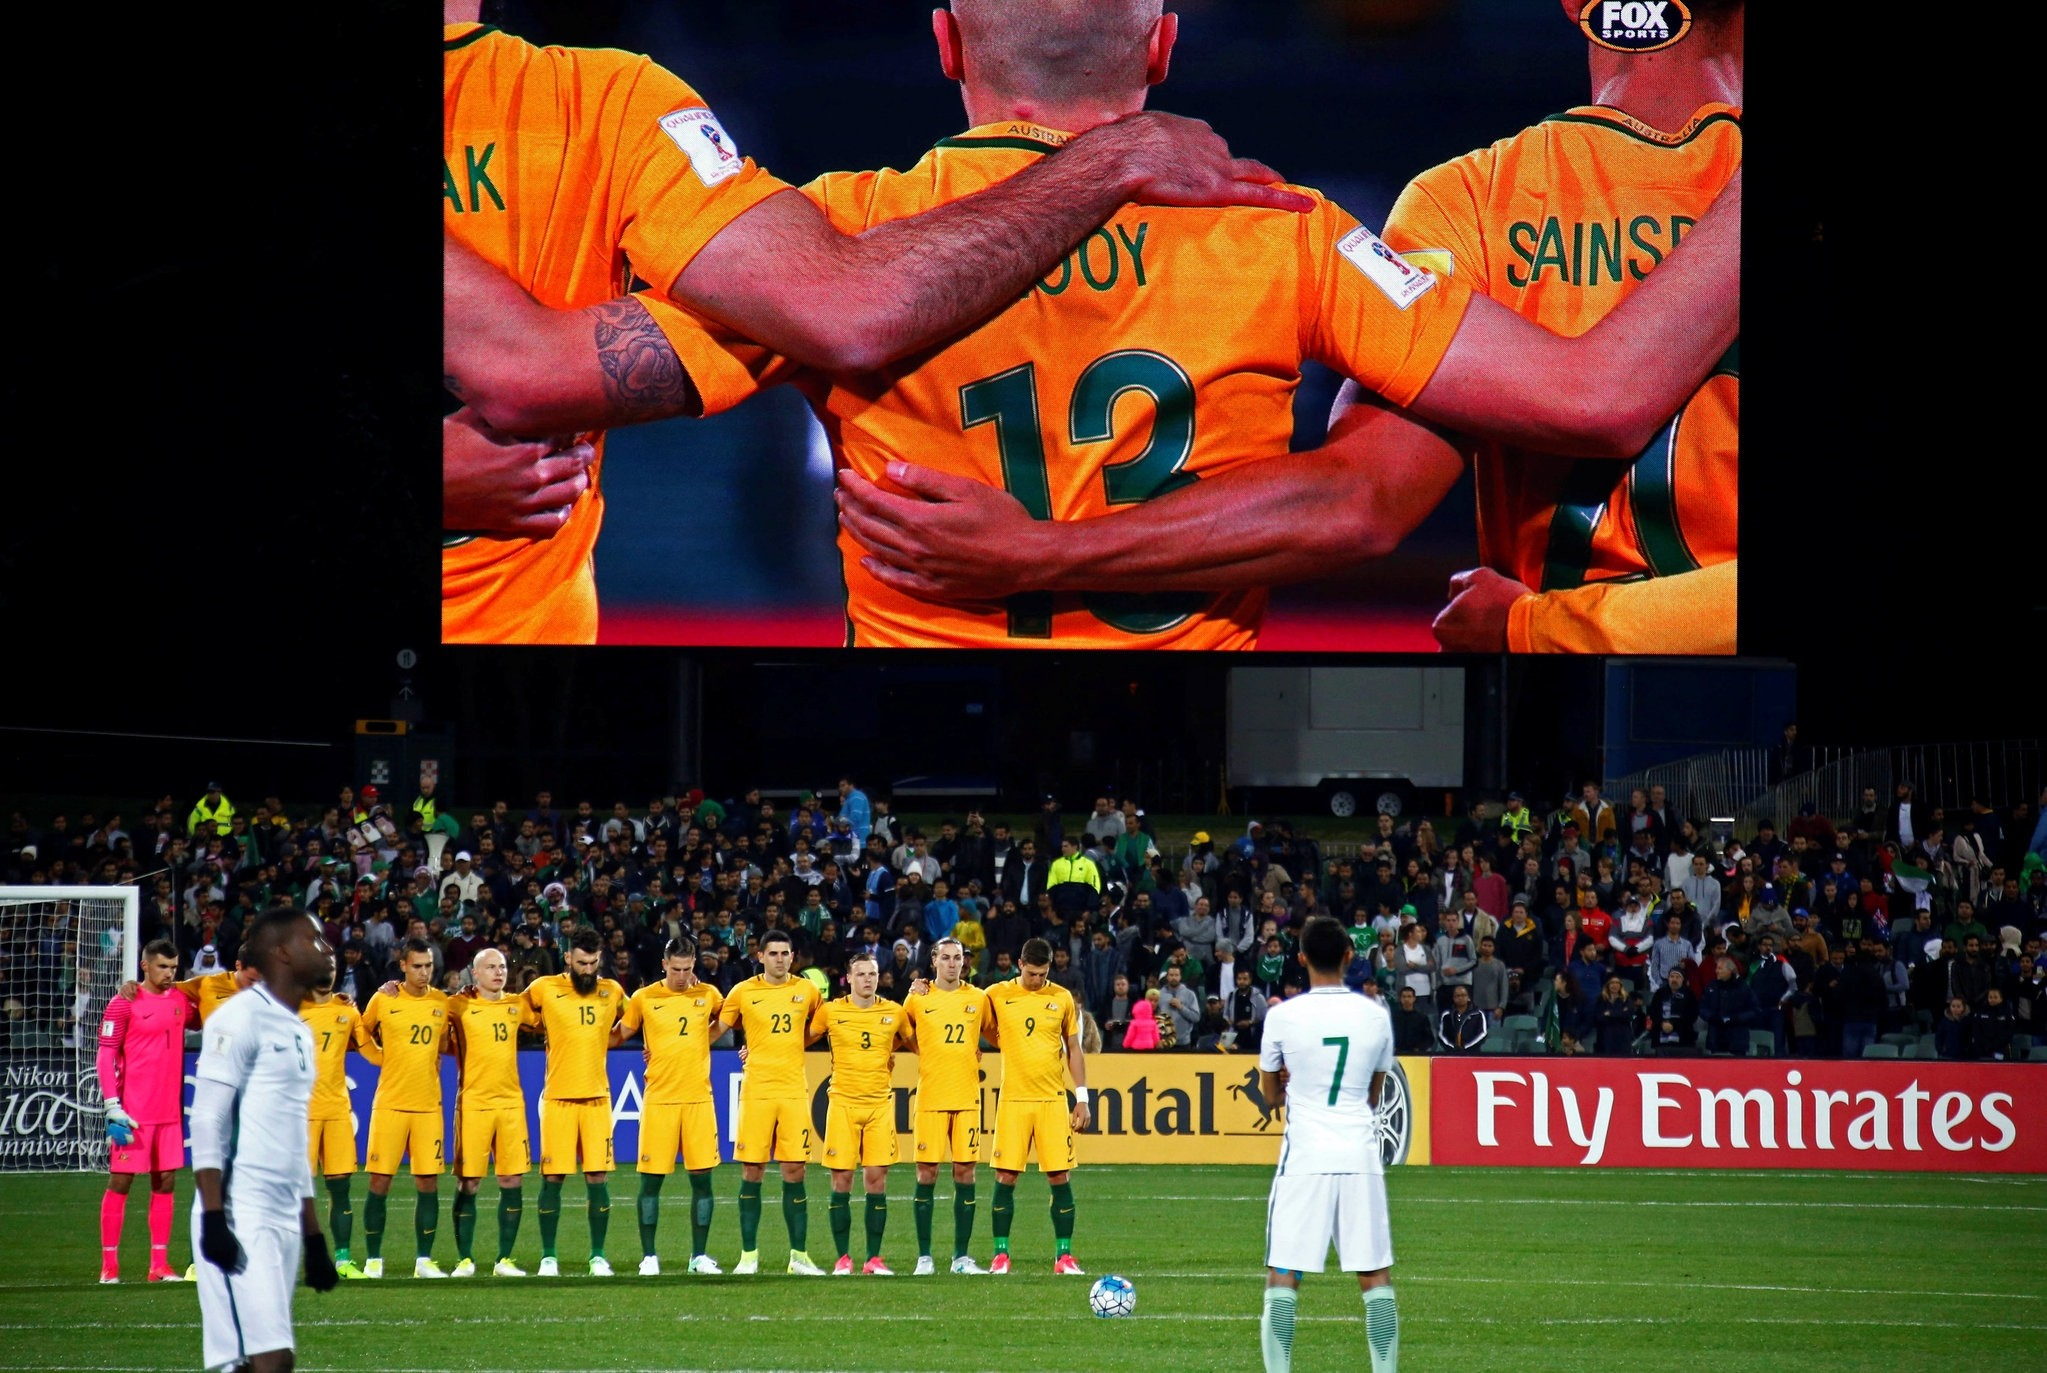 The Australian team observes a minute's silence for victims of London attacks, who include two Australians. (REUTERS Photo)